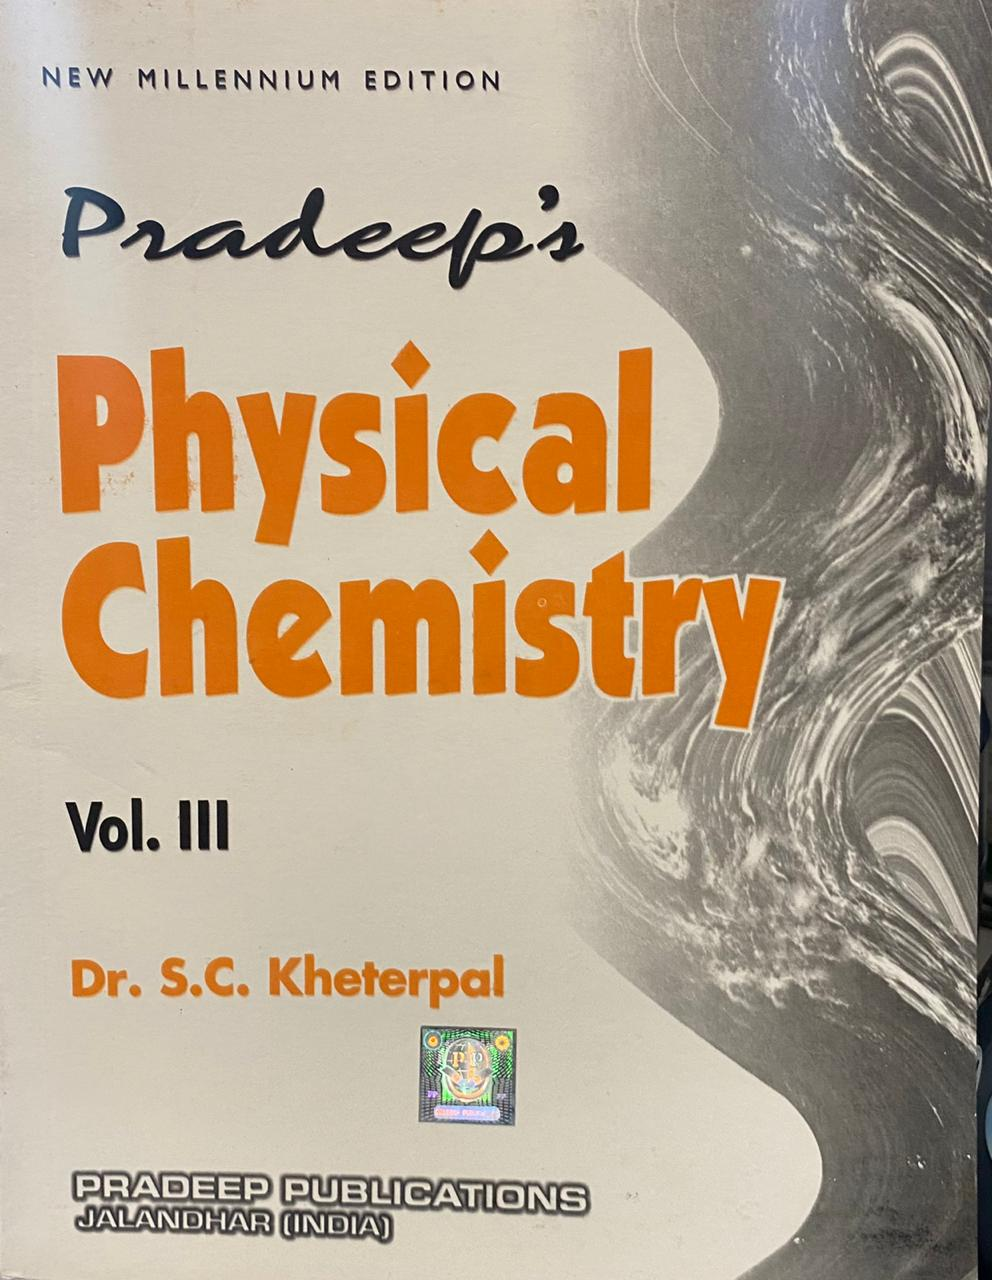 Pradeep physical Chemistry Vol. 3, For B.Sc. Part-3 Sem.-5 & 6 (P.U.) by Dr. S.c kheterpal